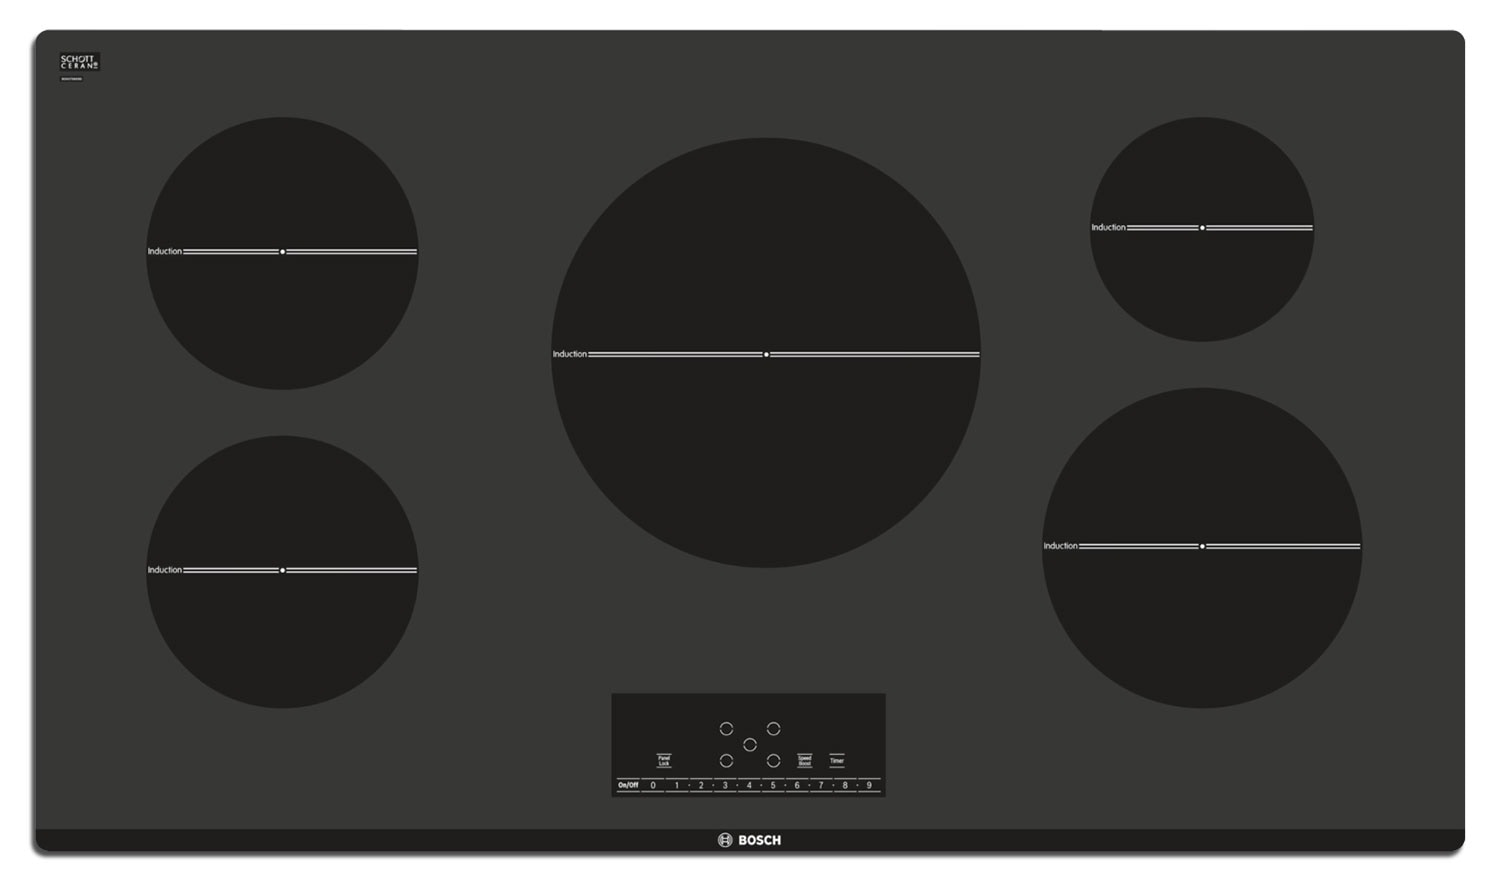 Bosch Black Electric Induction Cooktop - NIT5666UC